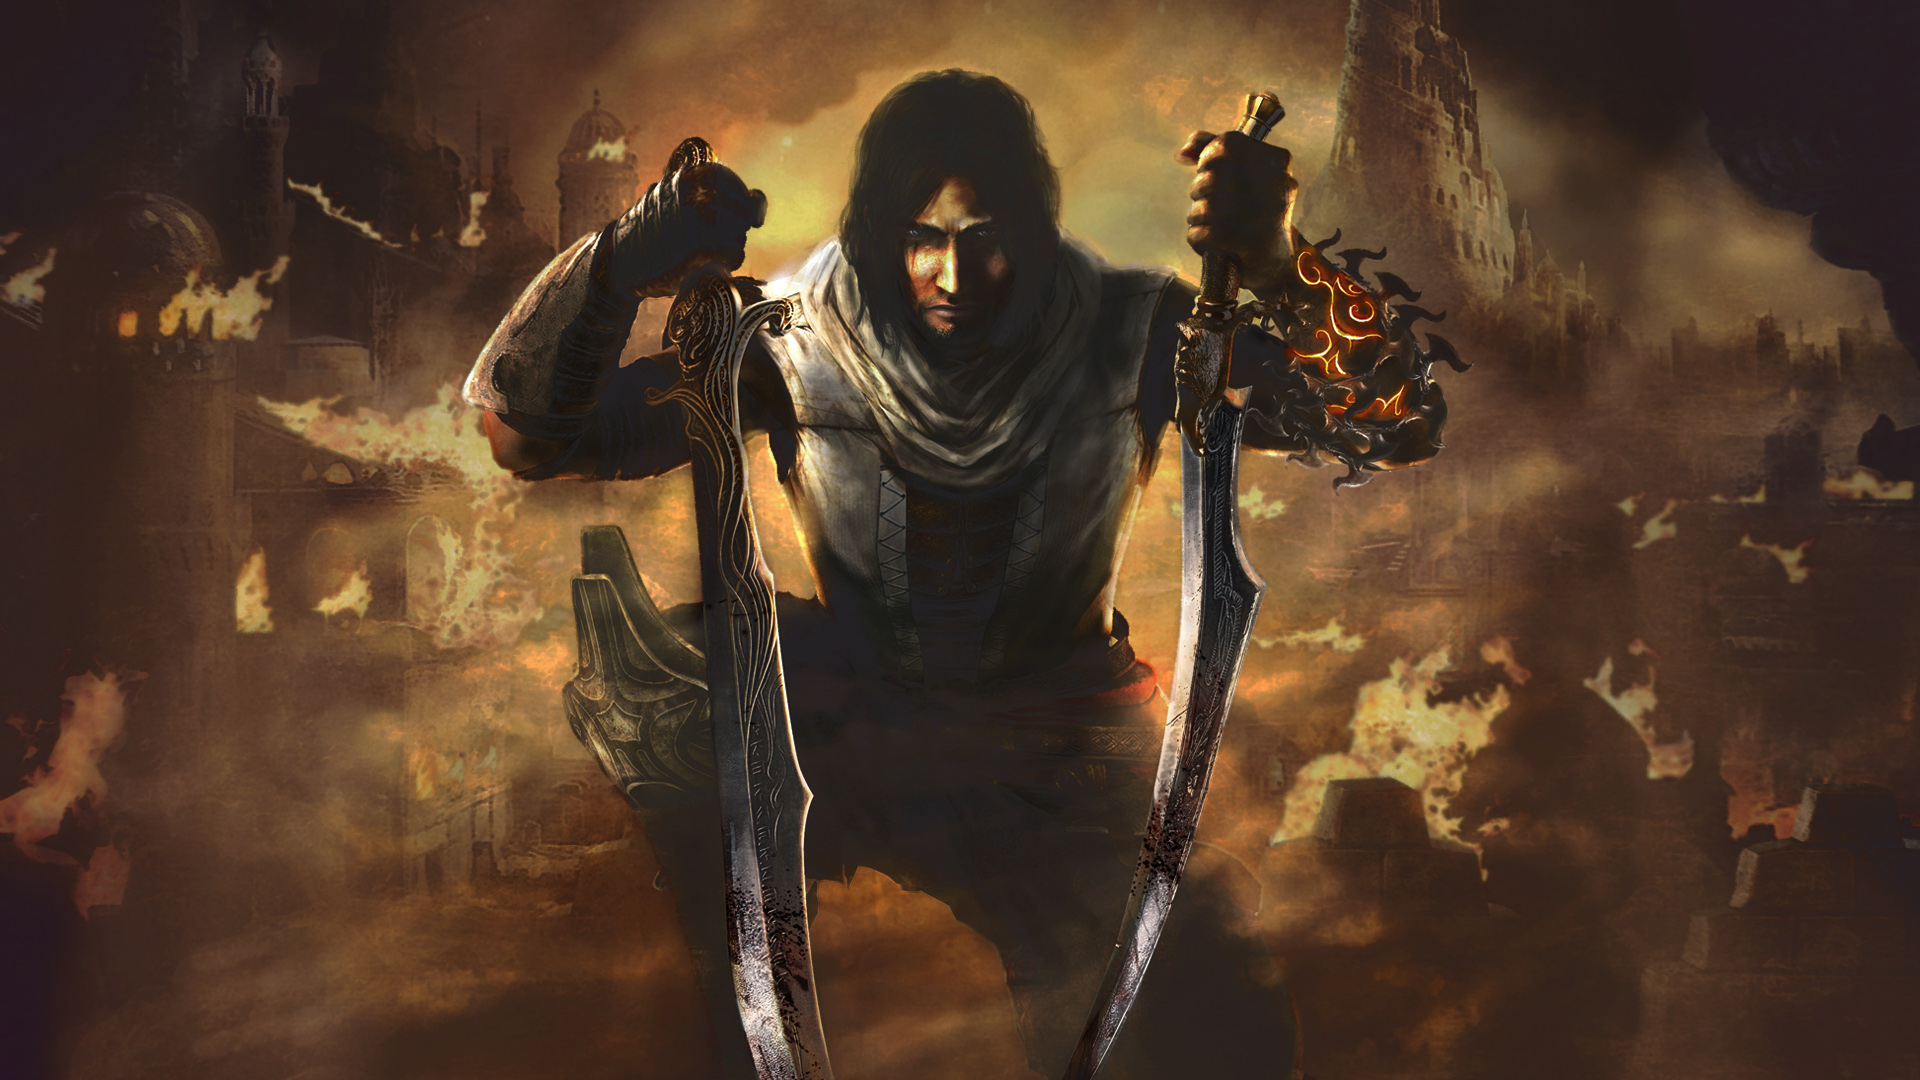 prince of persia hd wallpaper,action adventure game,cg artwork,movie,demon,pc game